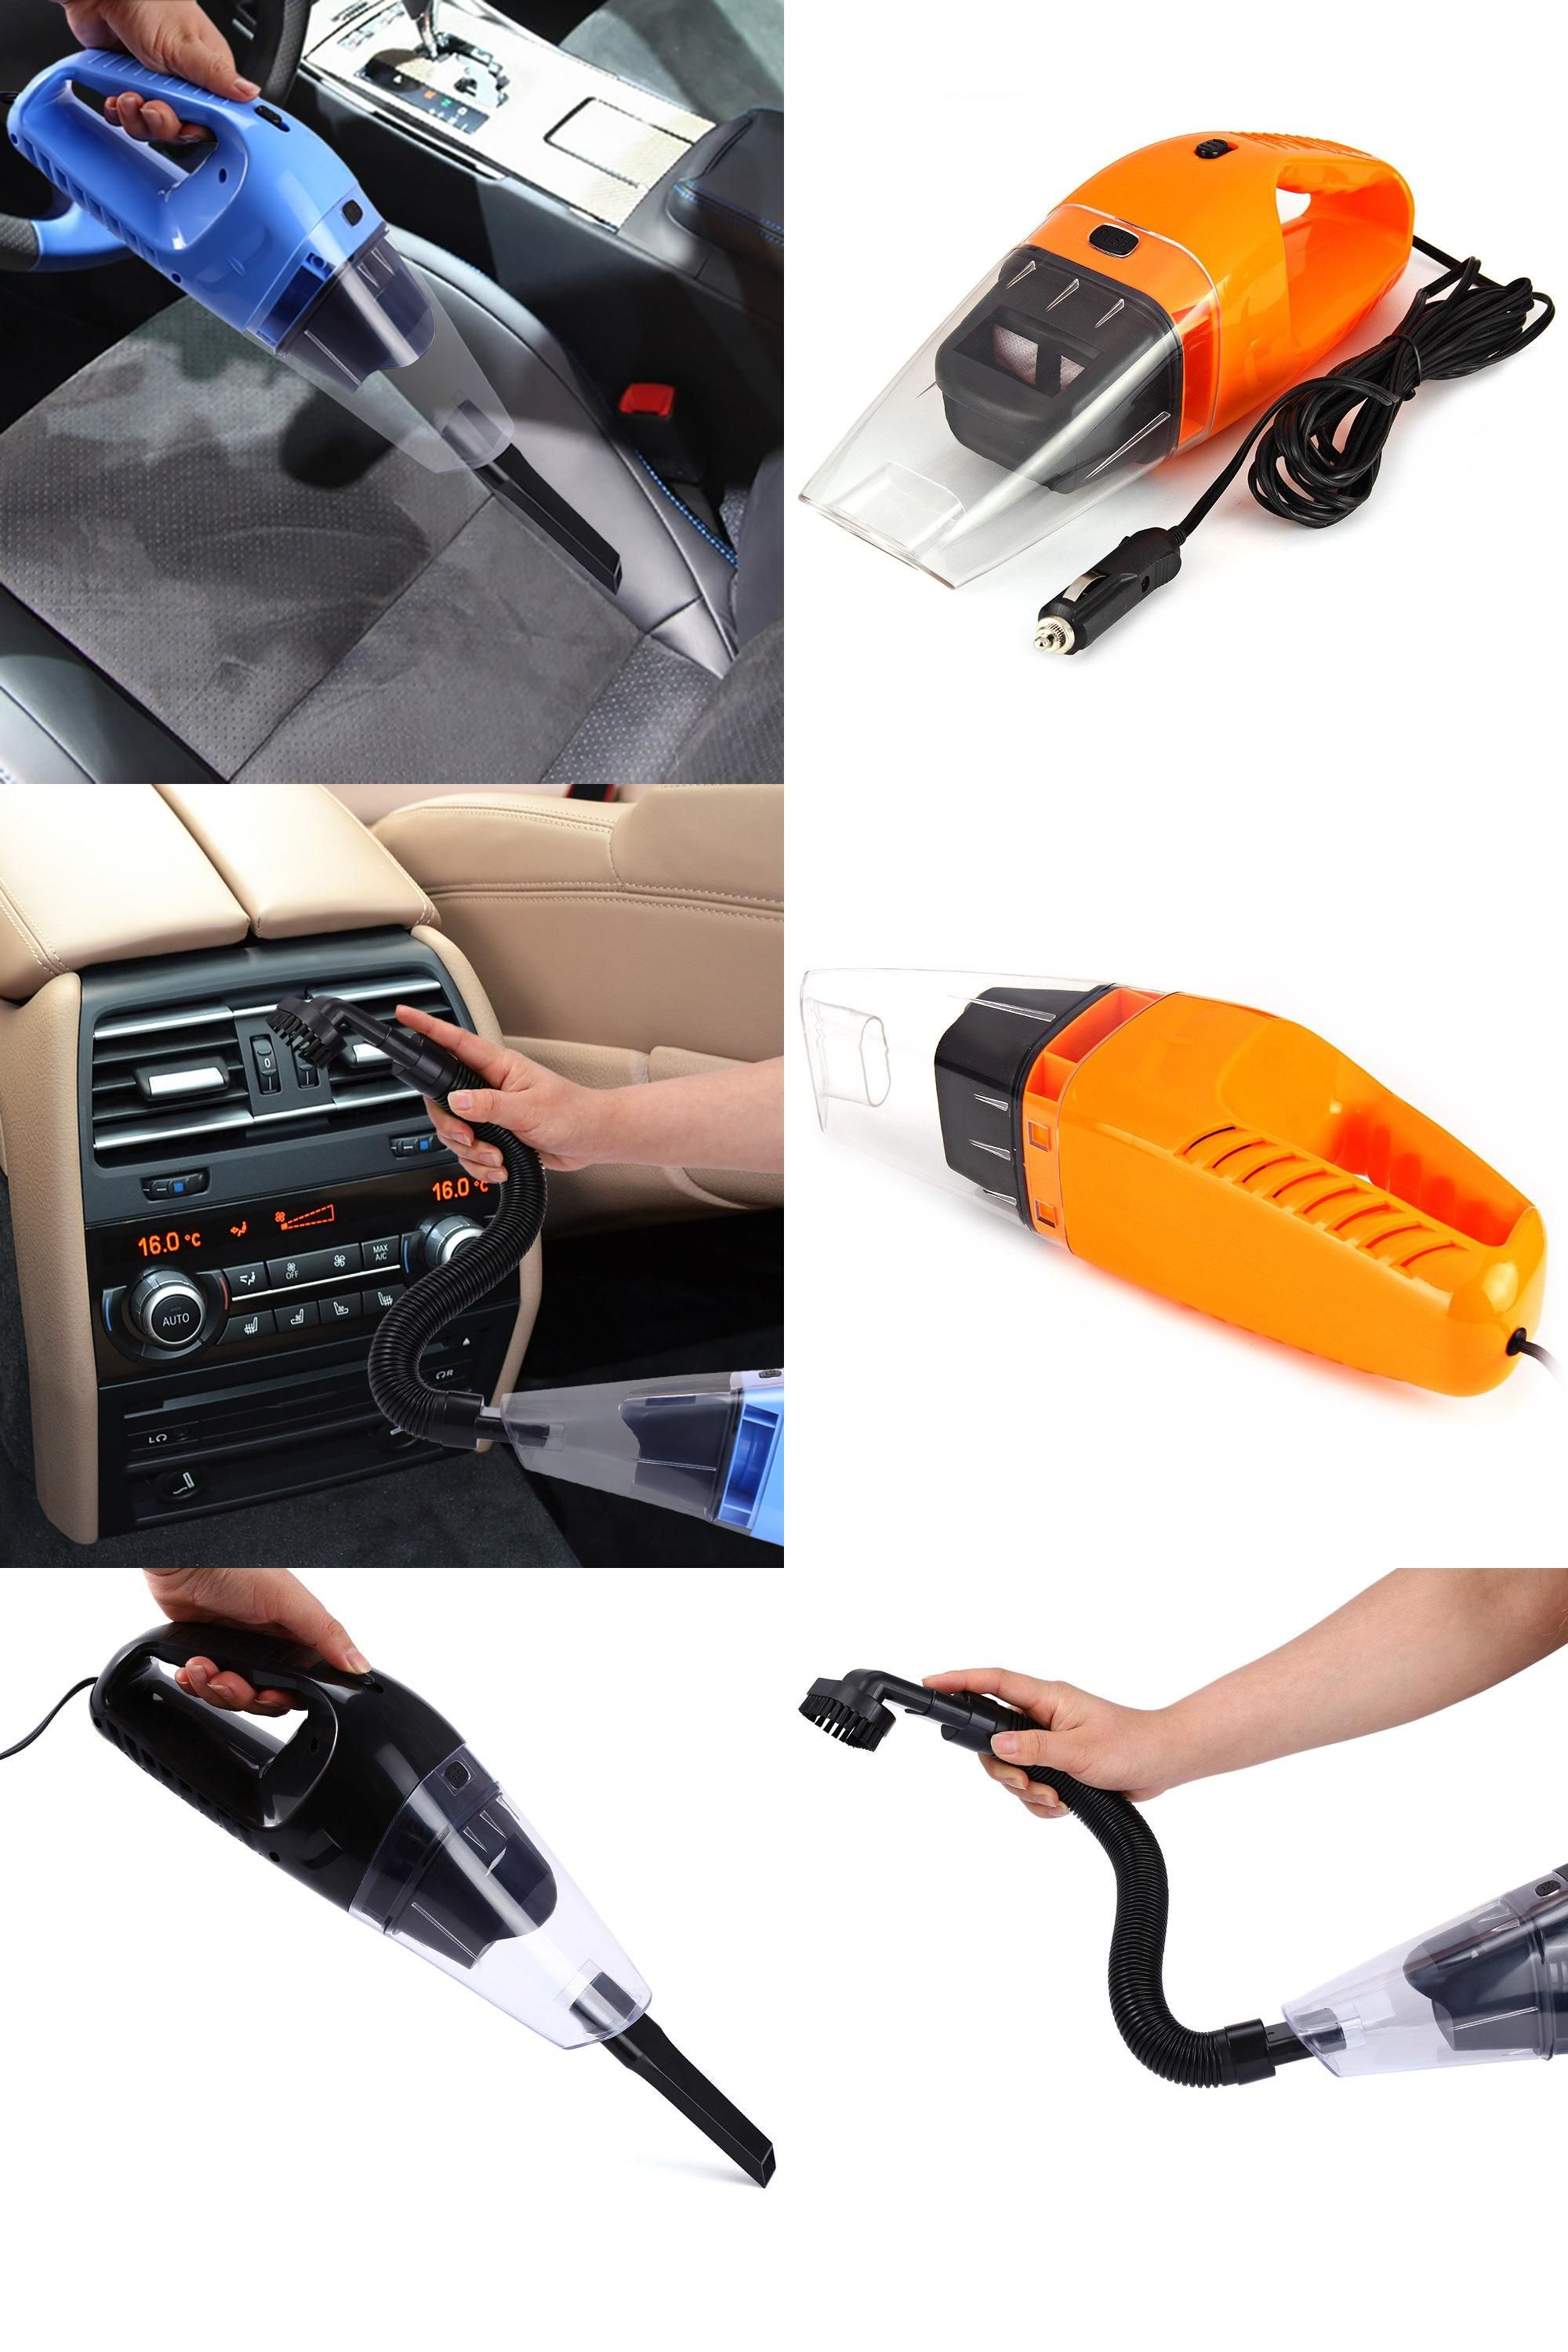 Visit To Buy Portable Plug In 120 W 12 V Car Vacuum Cleaner Handheld Wet Dry Dual Use Dust Cleaner With 5 M Wir Car Vacuum Cleaning Dust